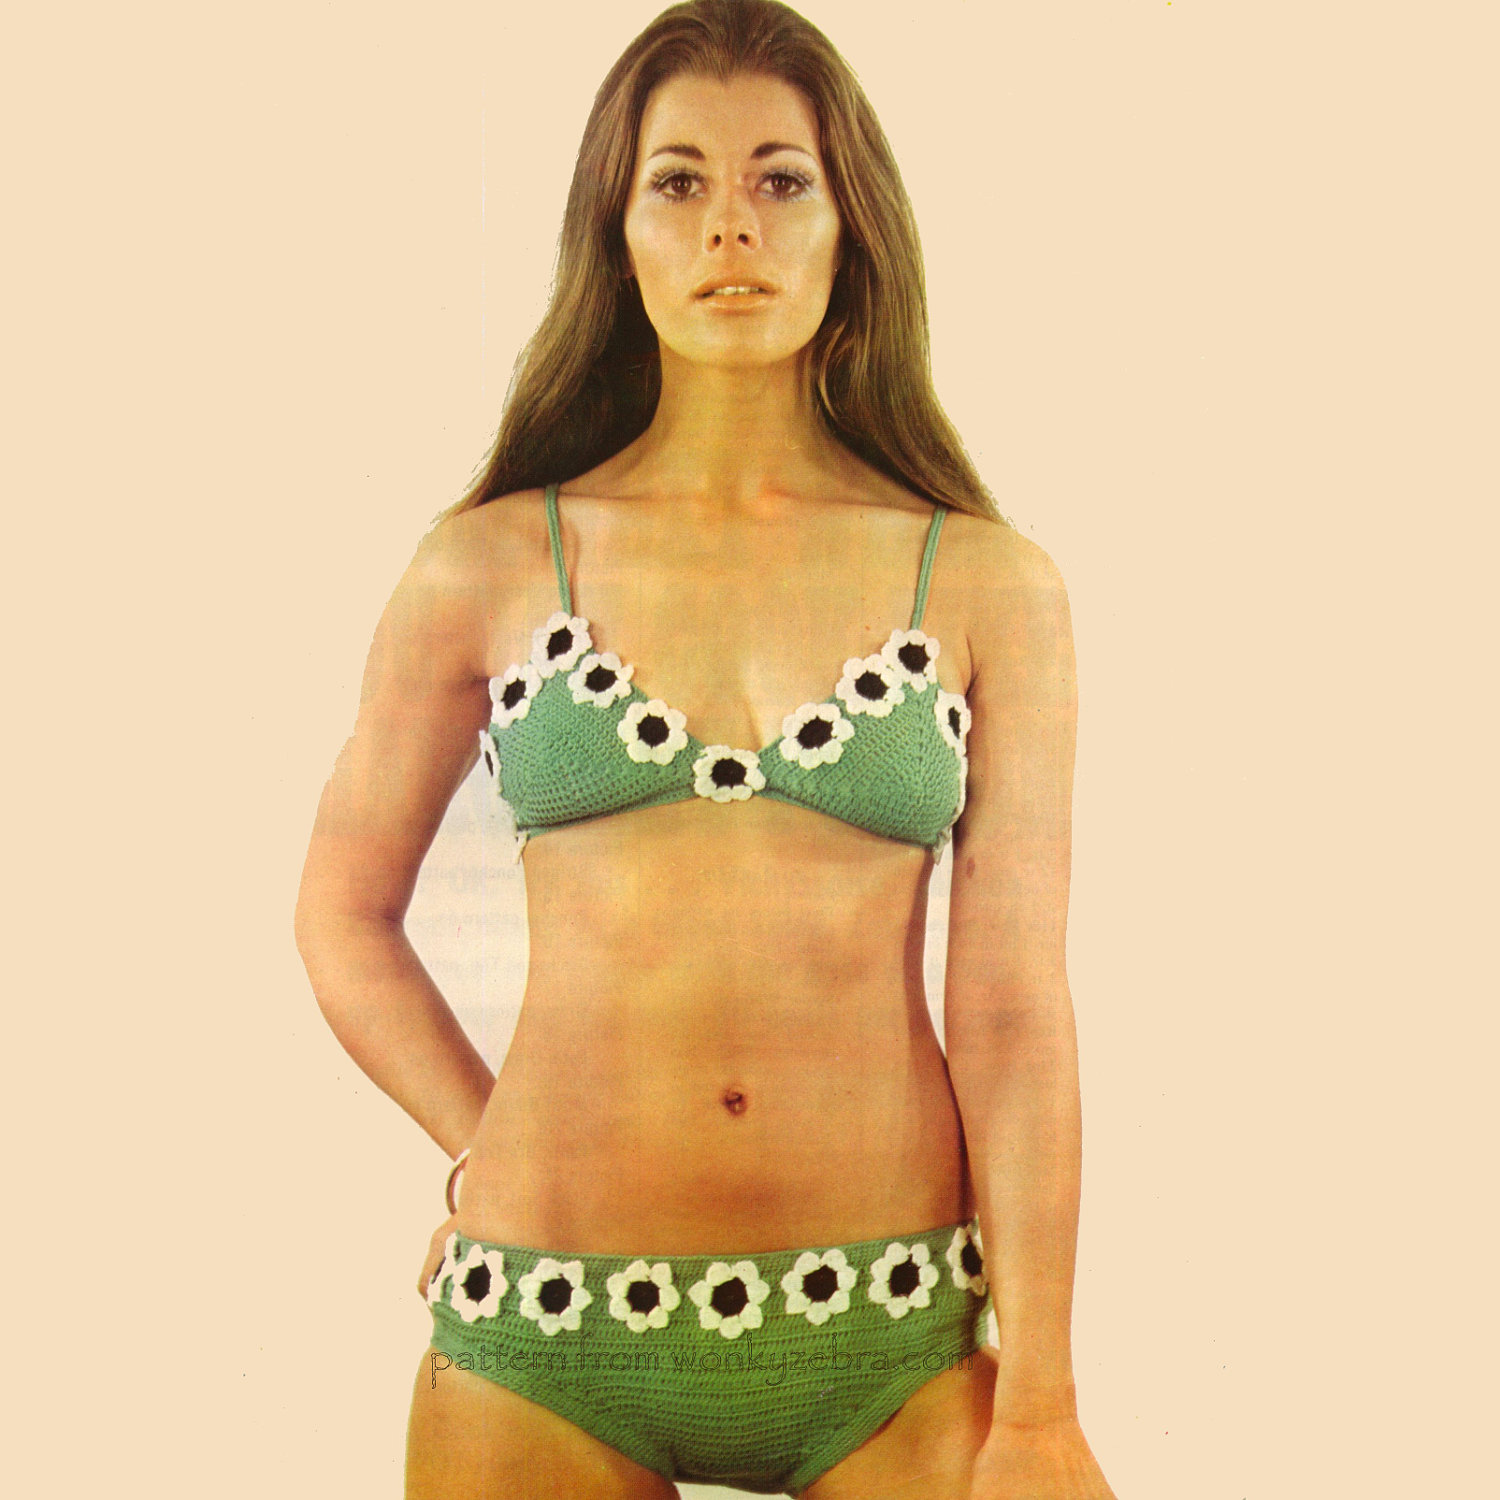 crochet bikini a must since the 70s